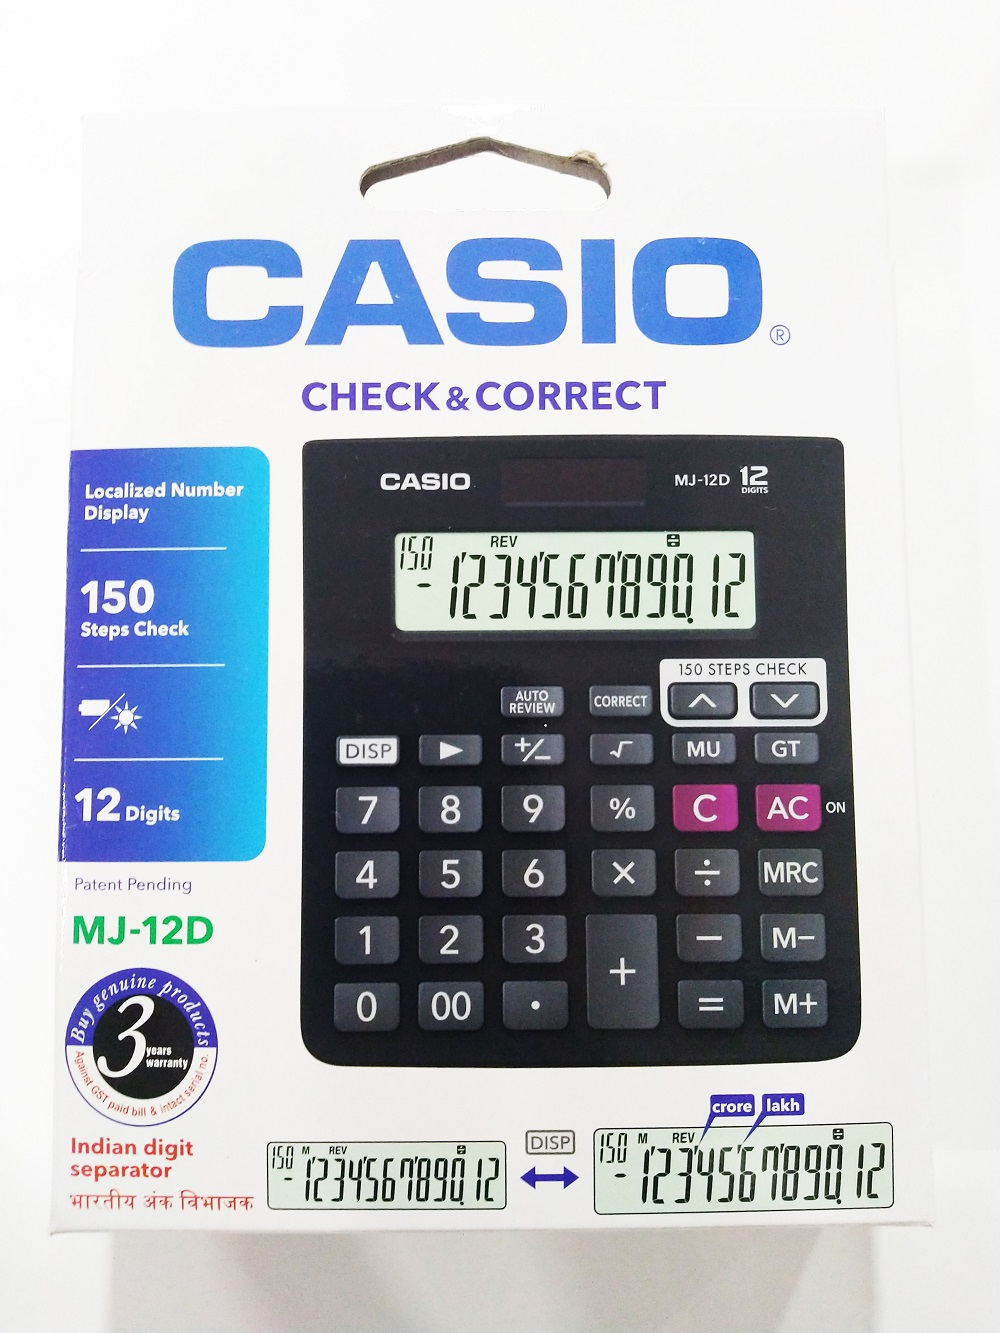 Casio MJ-12D Calculator 3Years Warranty with Check and Correct Function